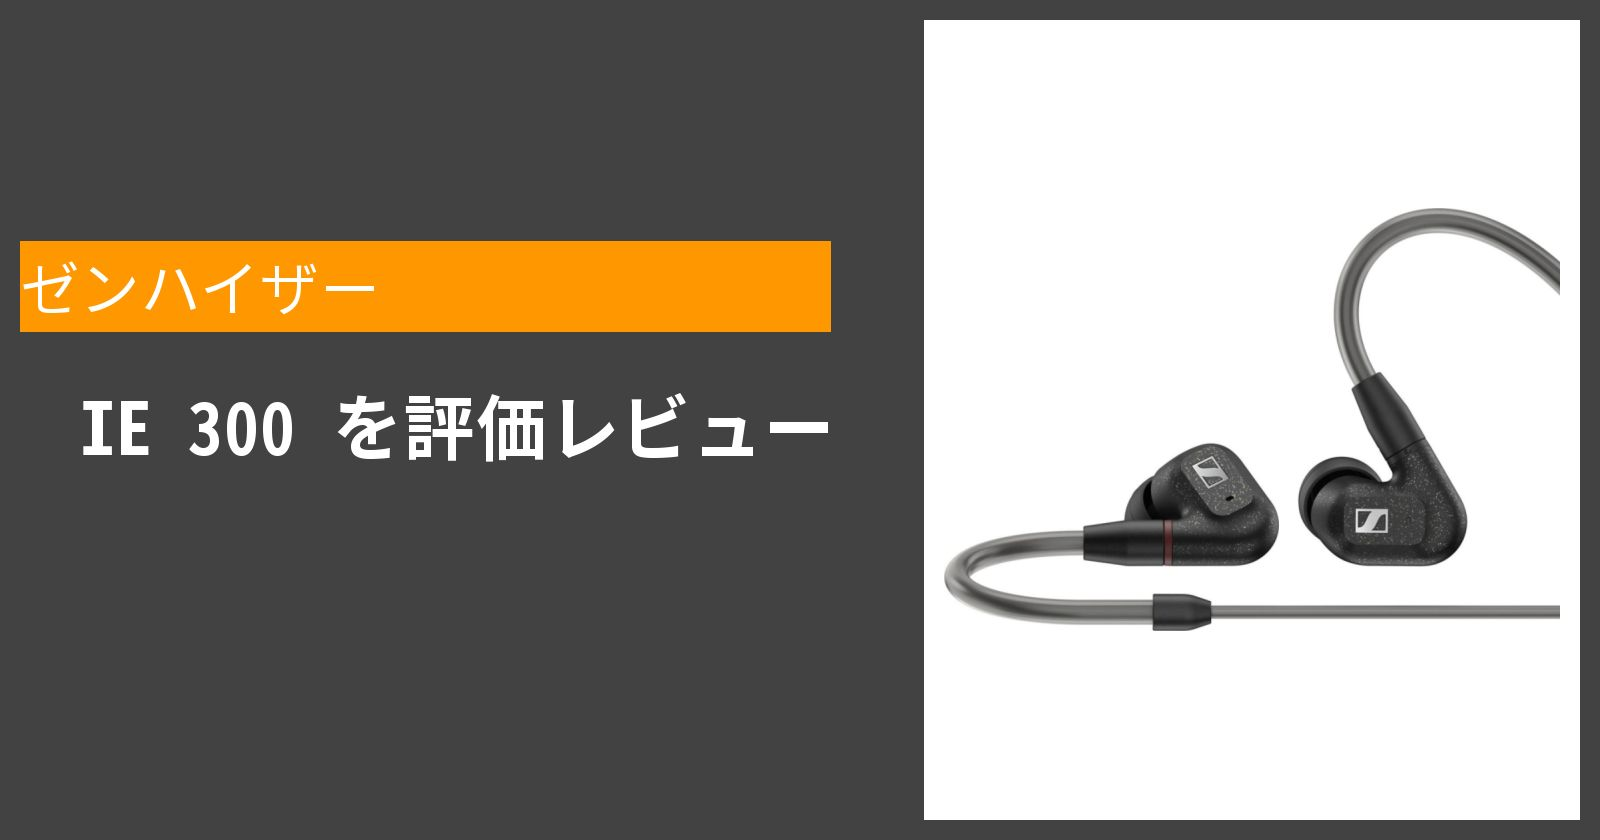 IE 300を徹底評価